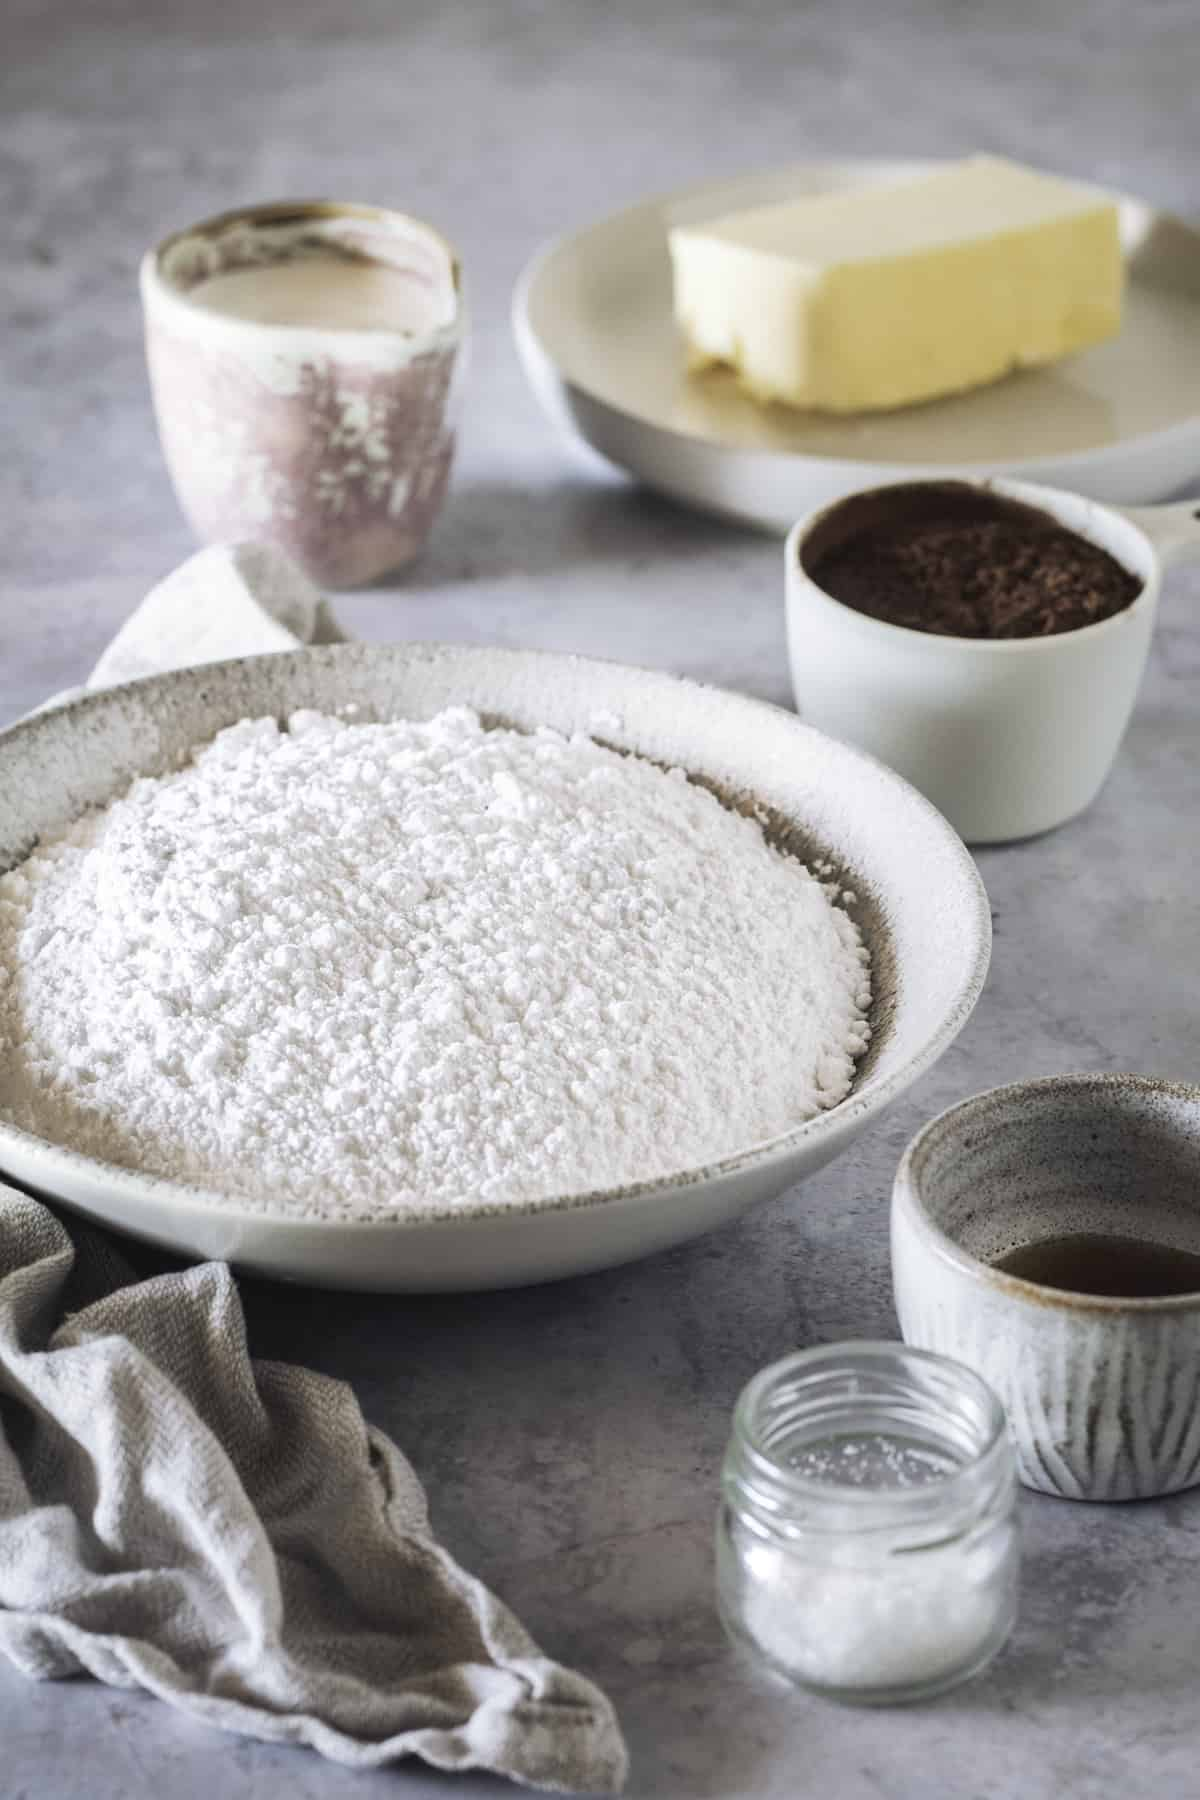 A Bowl of Powdered Sugar, Half a Cup of Butter and the Other Frosting Ingredients on a Gray Surface